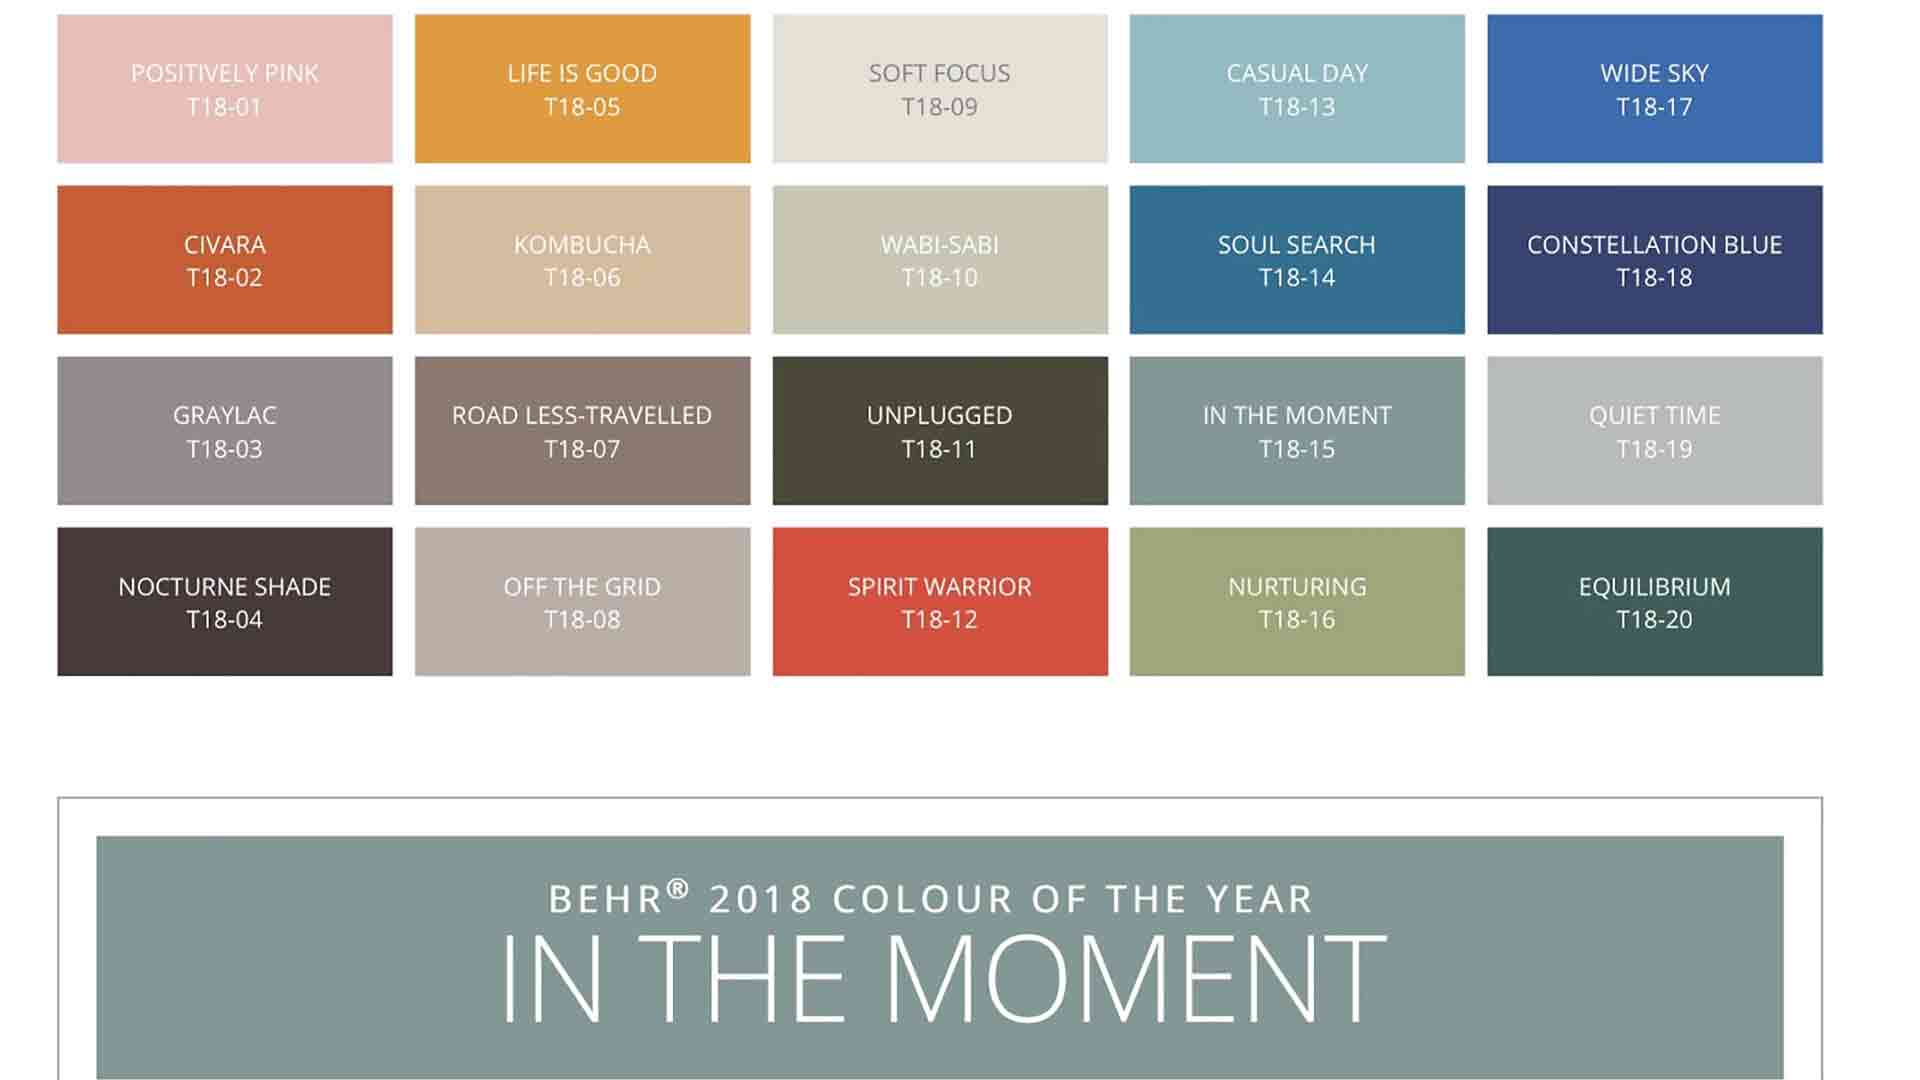 behr 20 trend colors for 2018